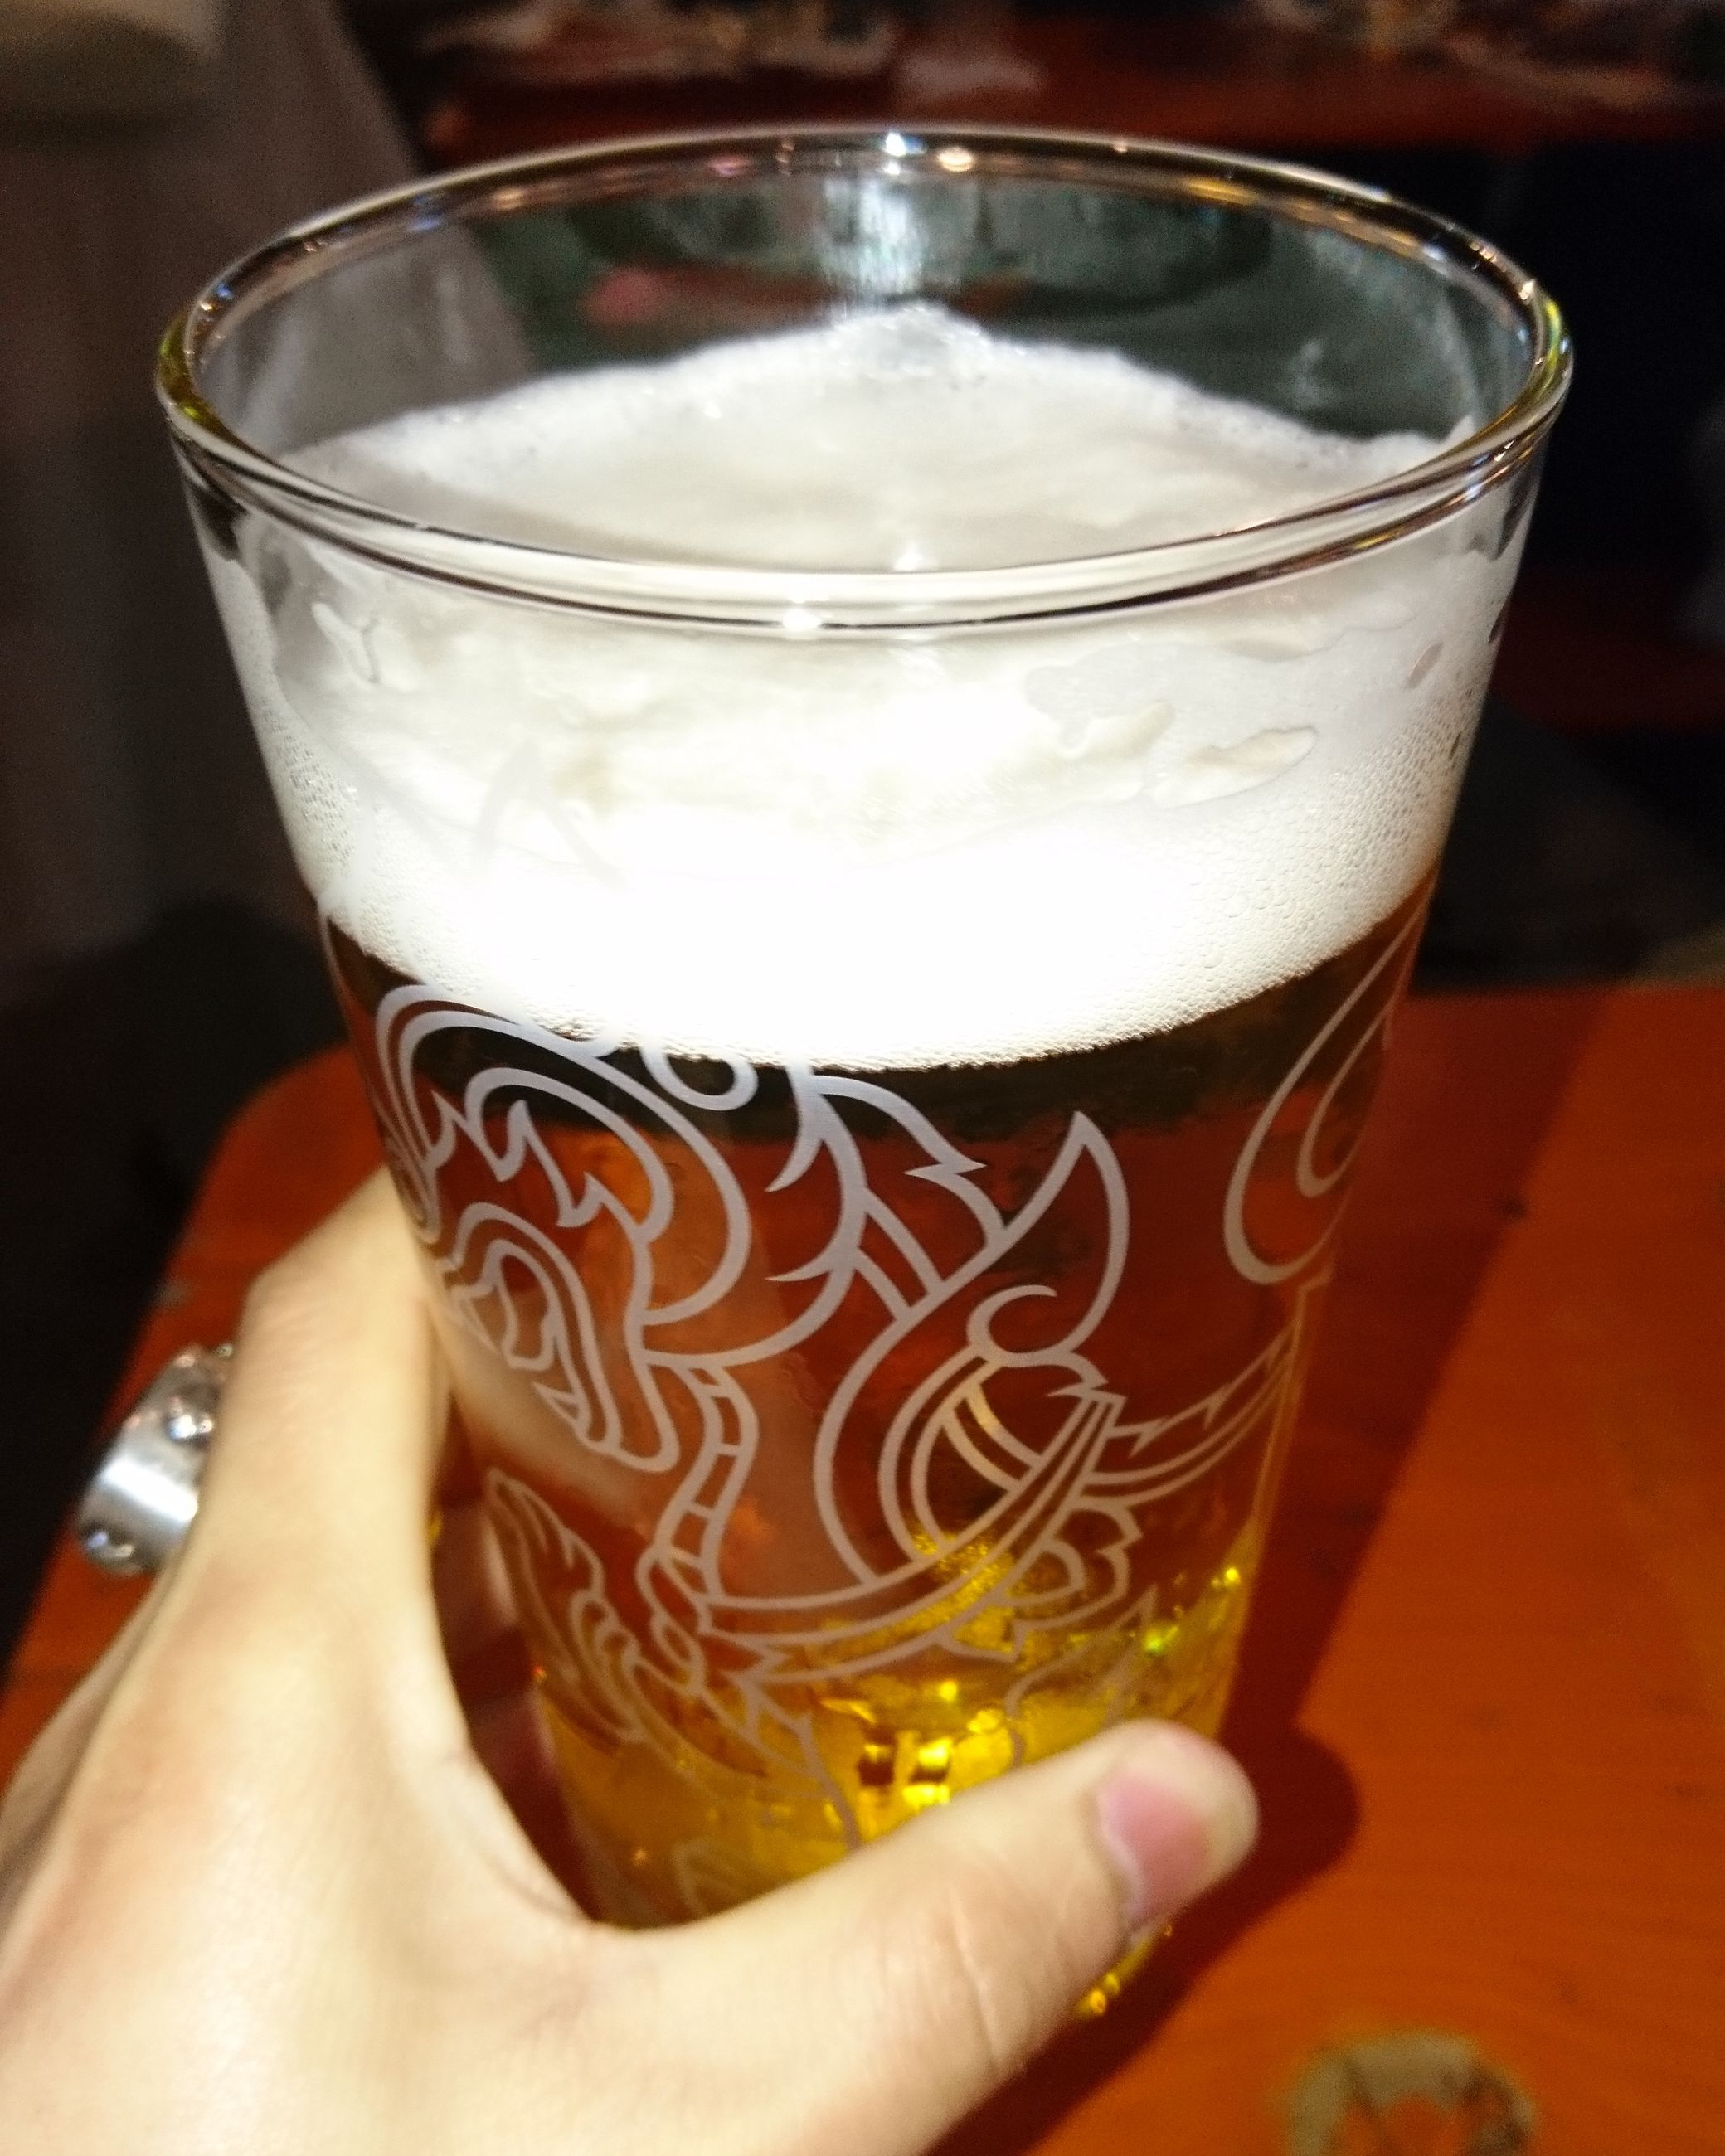 human hand, real people, drink, food and drink, one person, human body part, holding, refreshment, beer glass, drinking glass, personal perspective, freshness, lifestyles, beer, leisure activity, table, close-up, frothy drink, indoors, alcohol, women, food, day